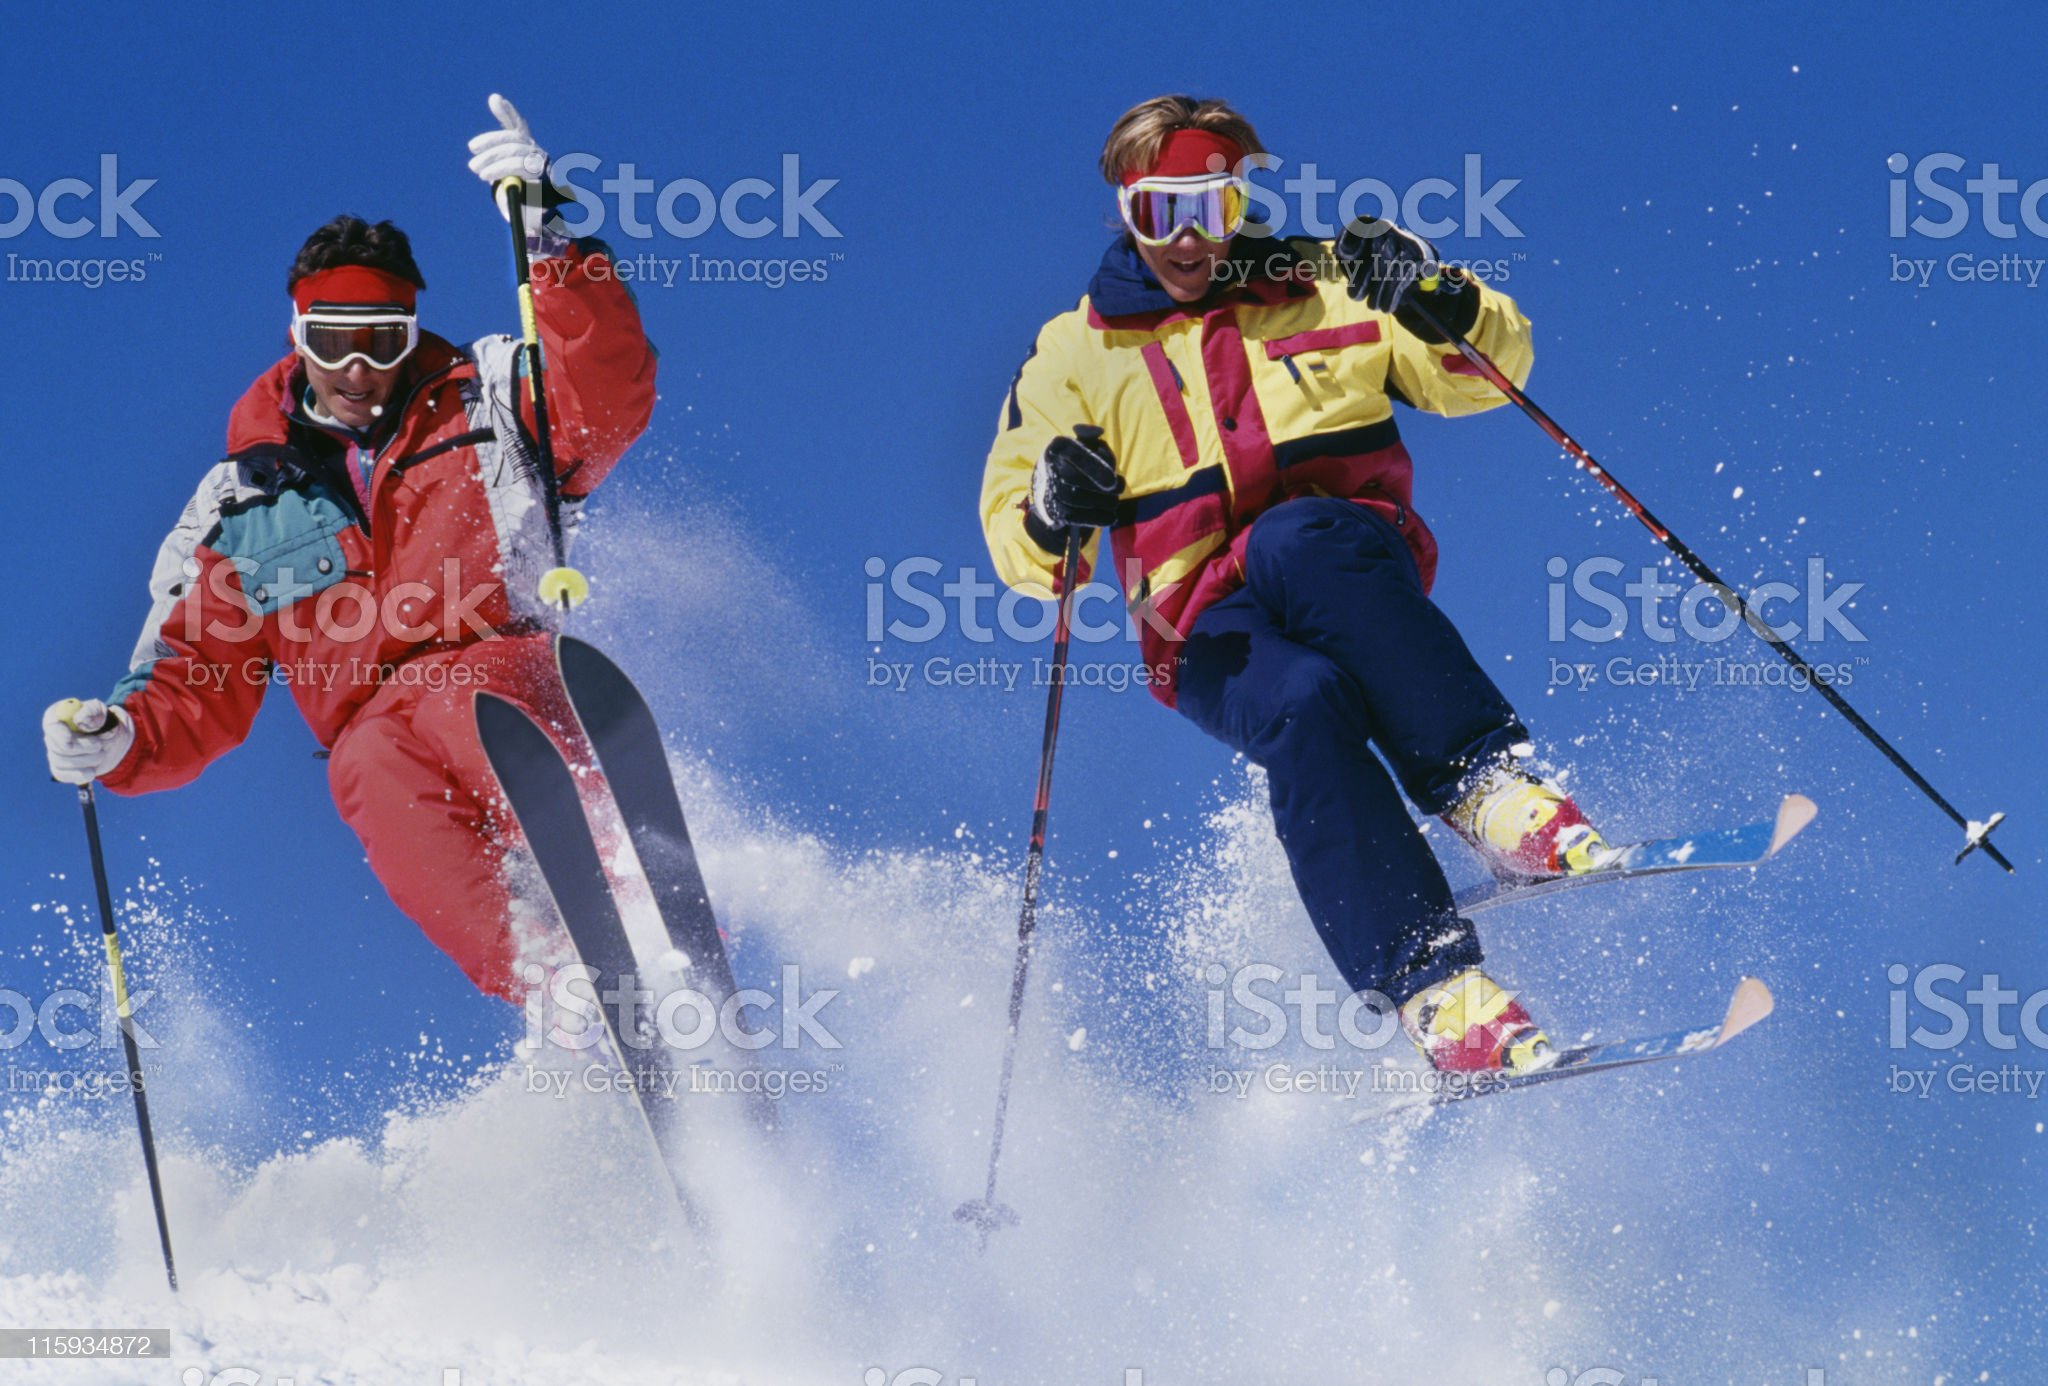 Two Snow Skiers Jumping Against Blue Sky royalty-free stock photo